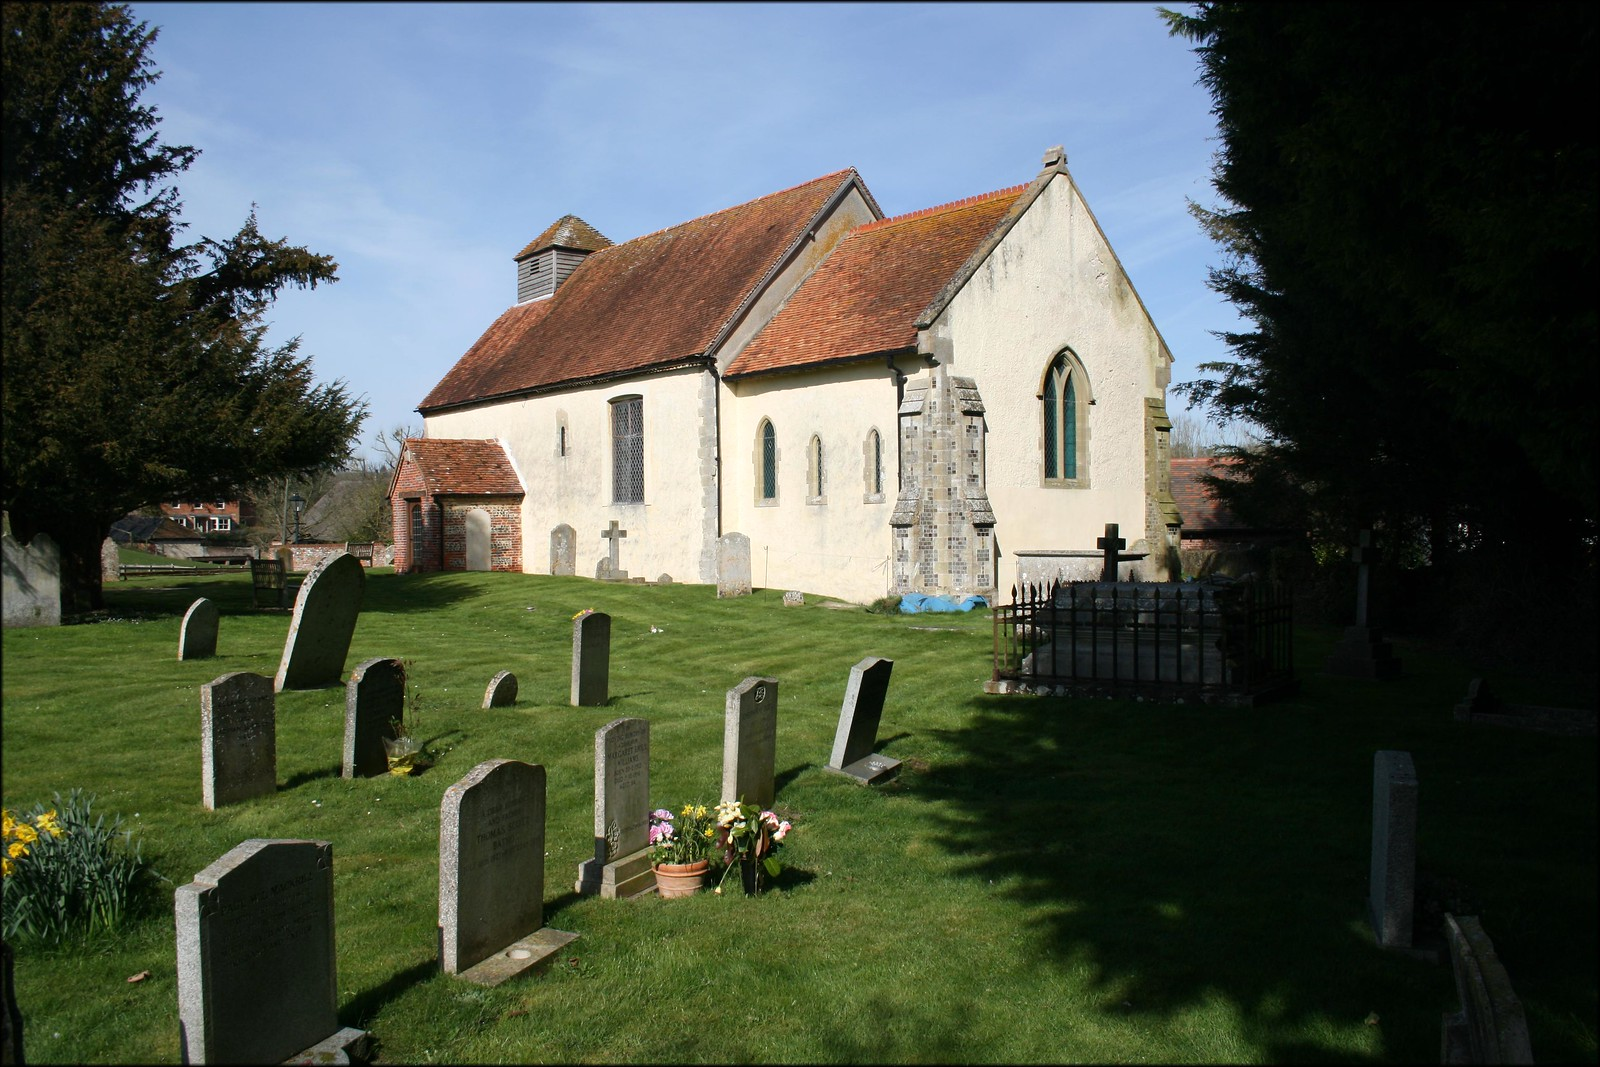 St Marys Church, Tufton